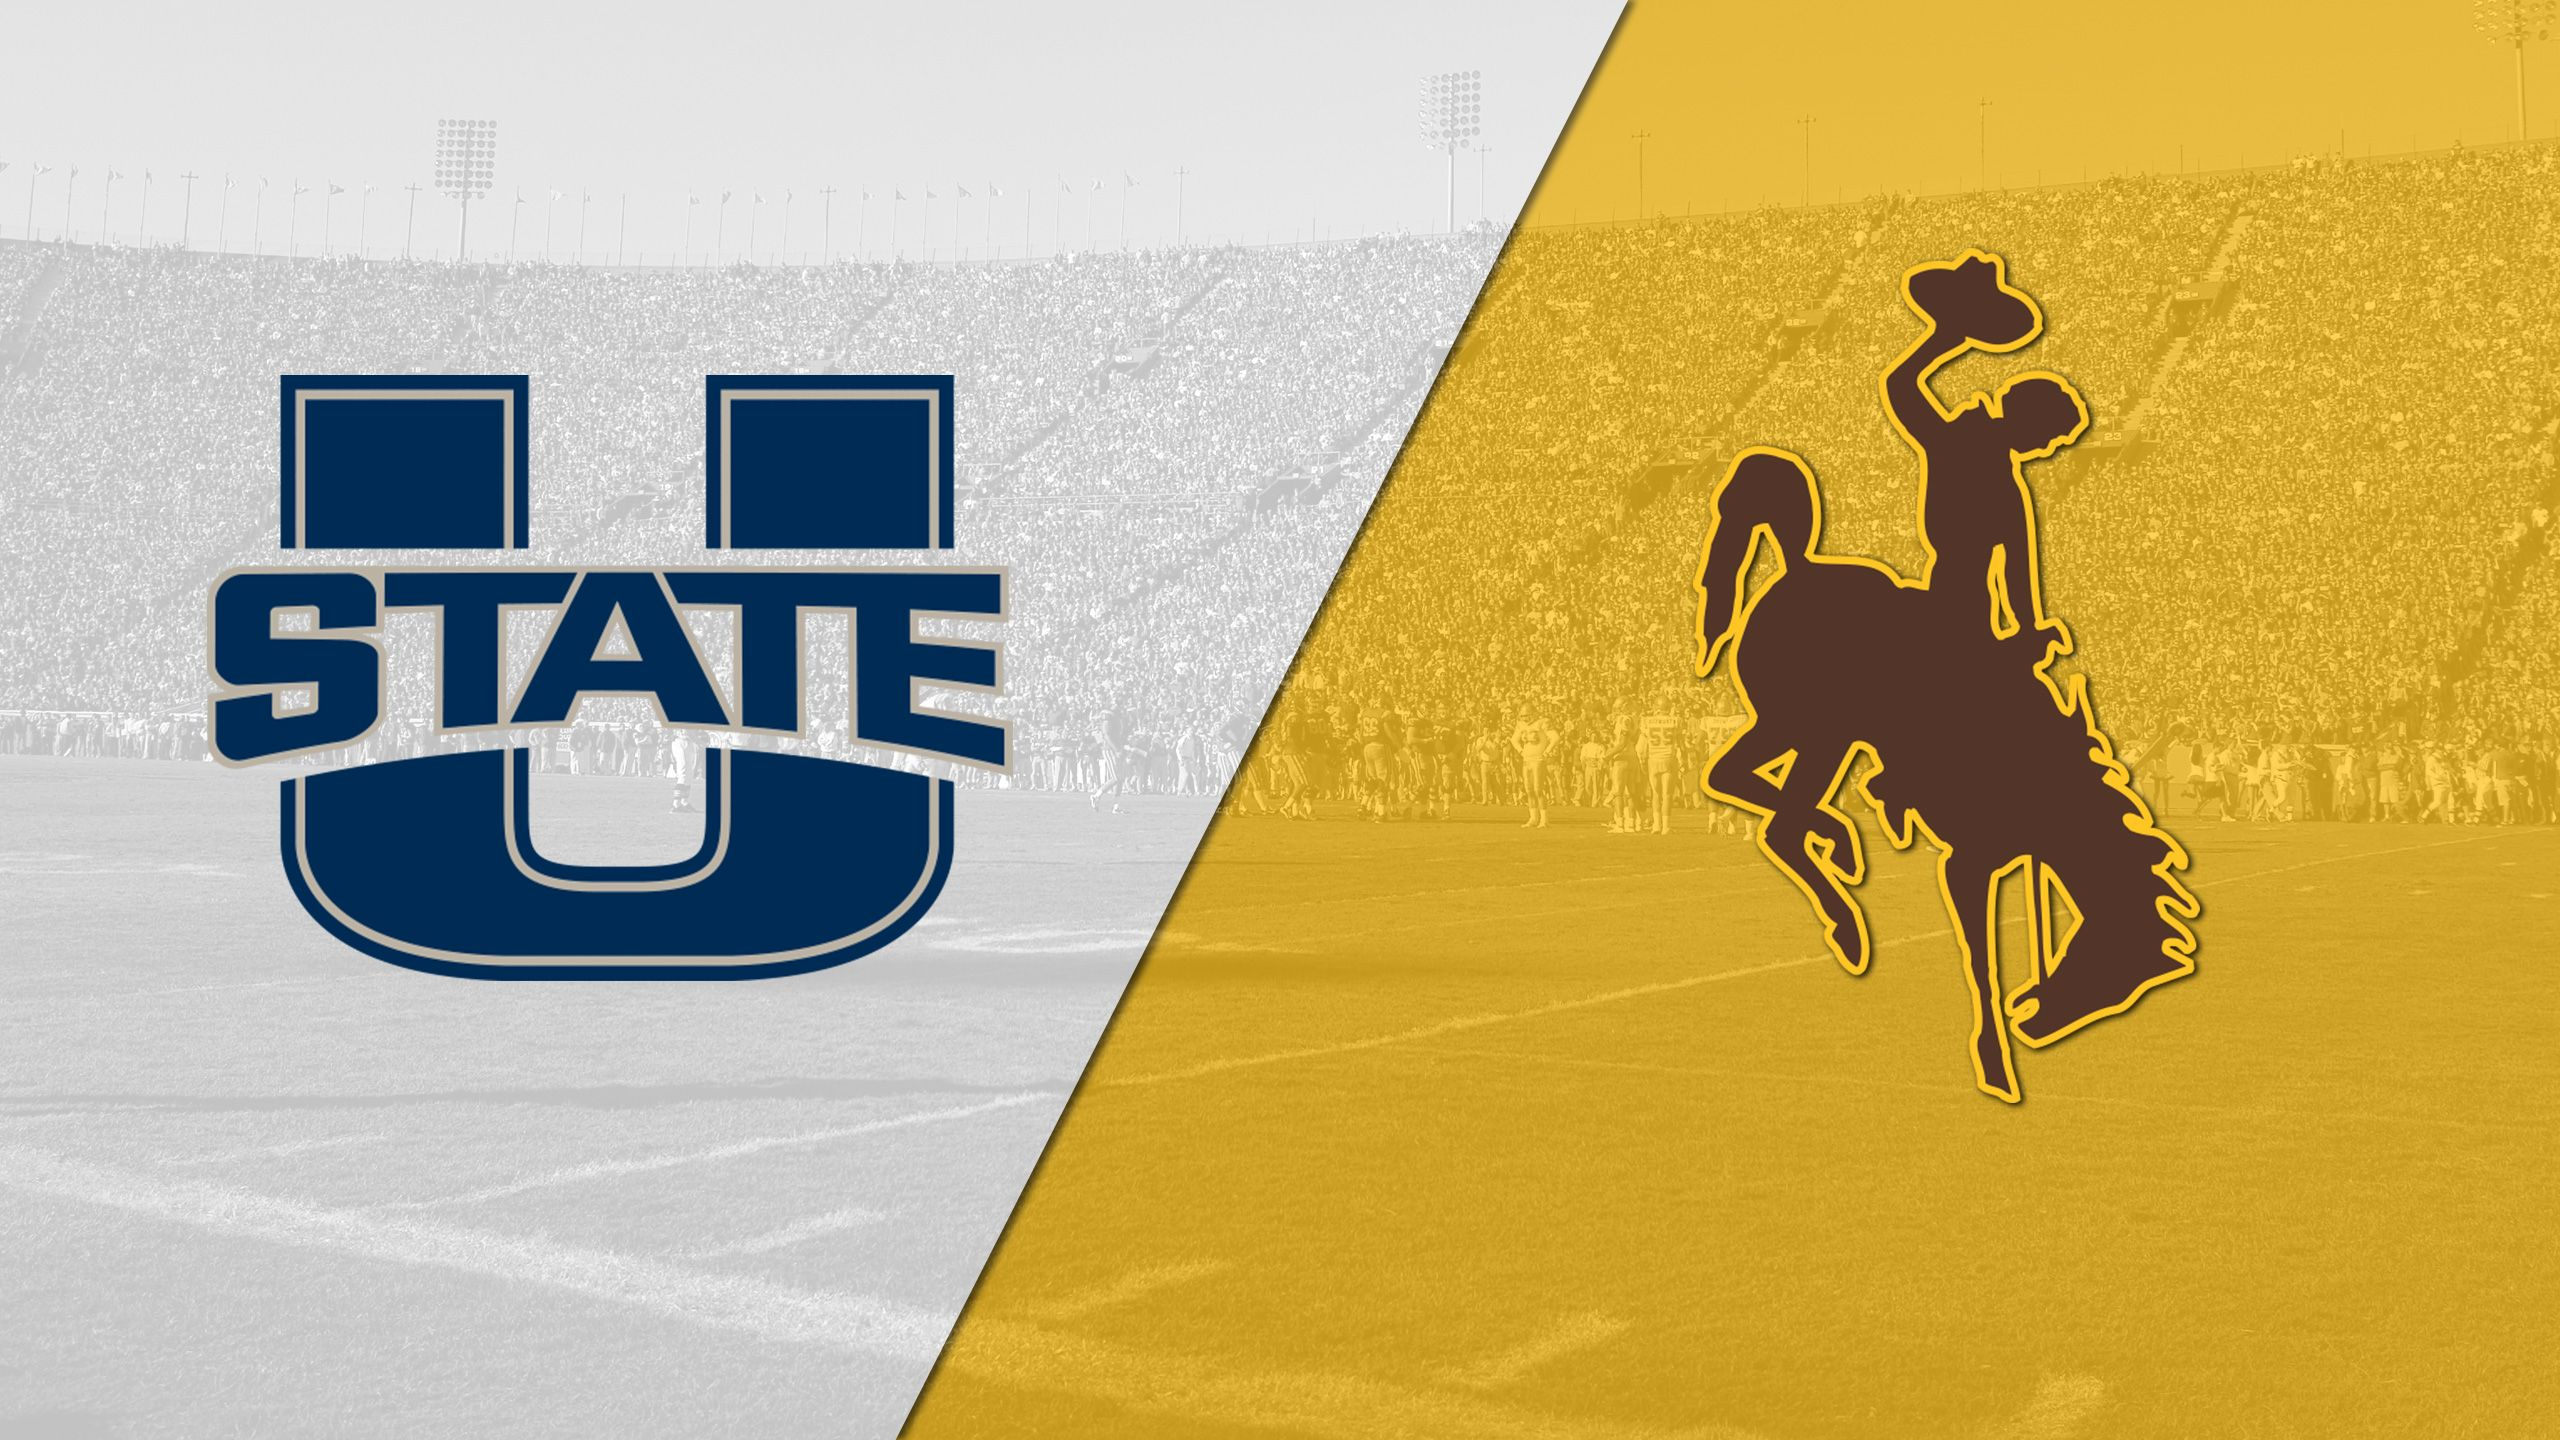 Utah State vs. Wyoming (Football) (re-air)